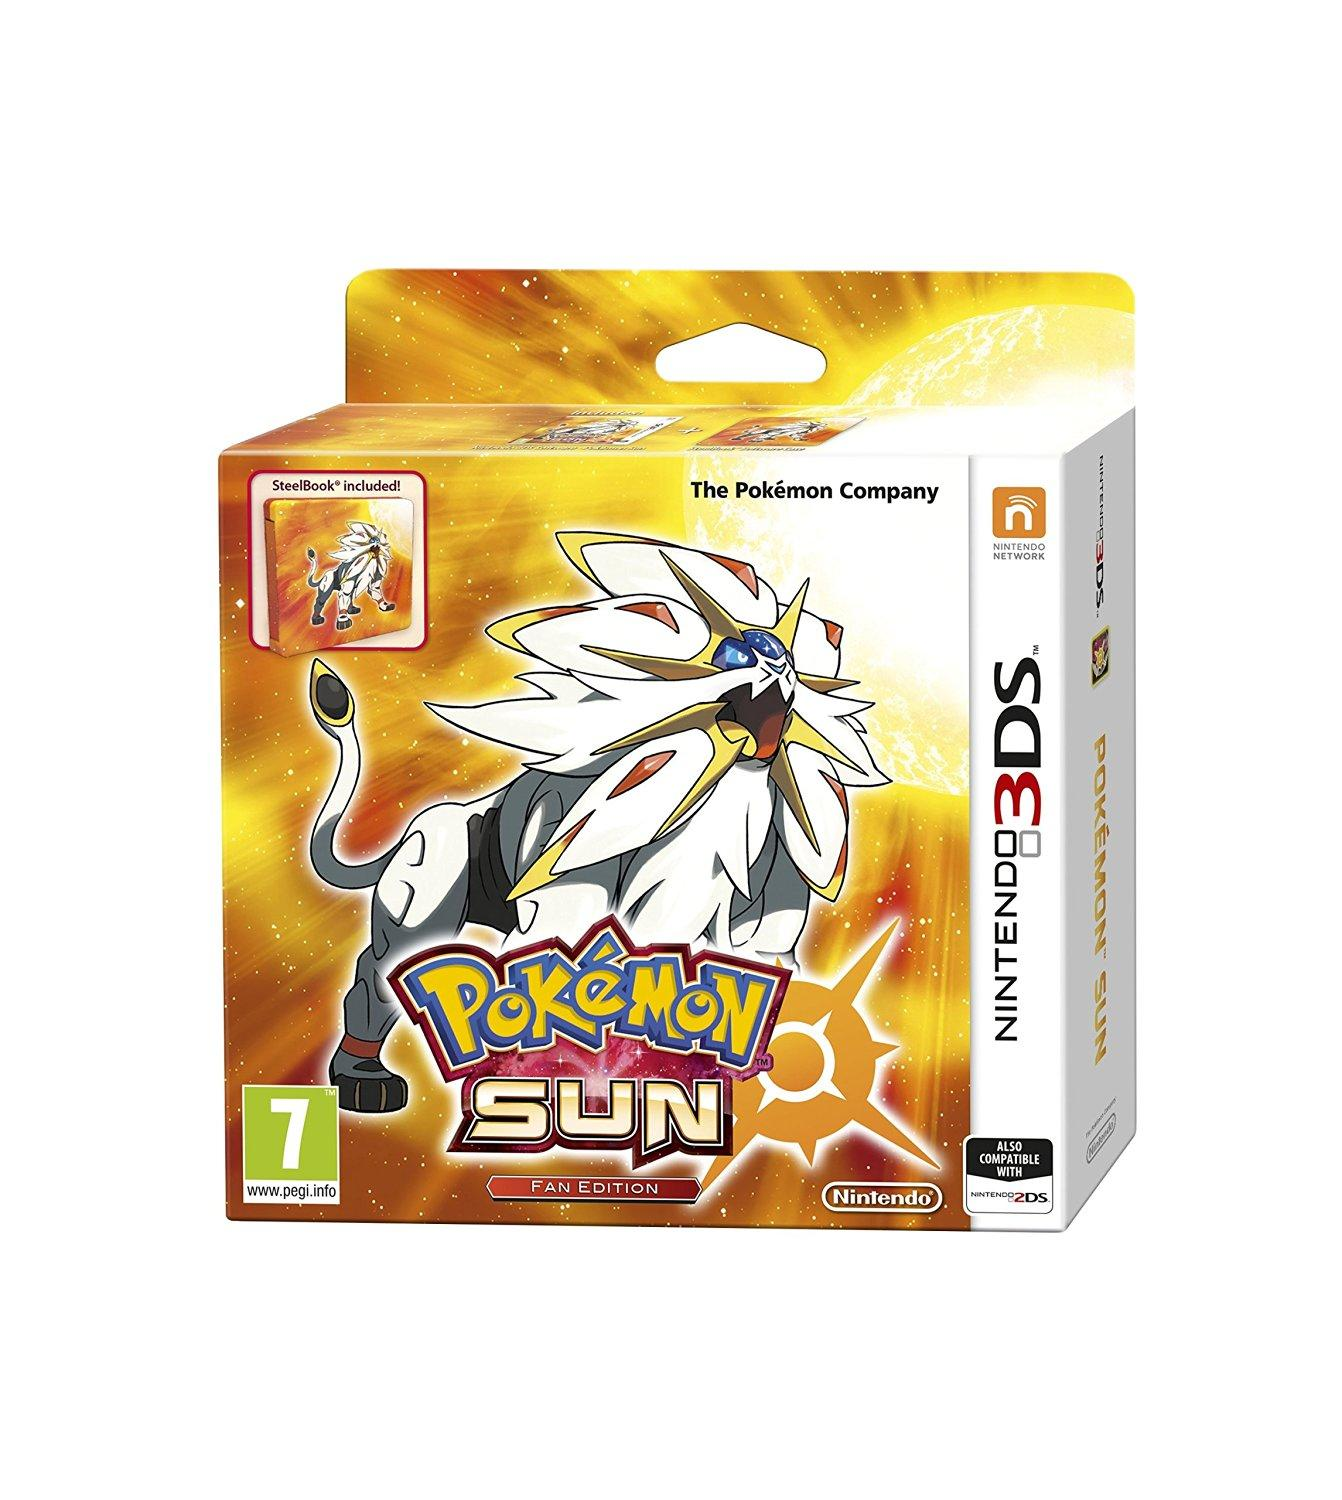 Pokémon Sun Fan Edition Nintendo 3DS